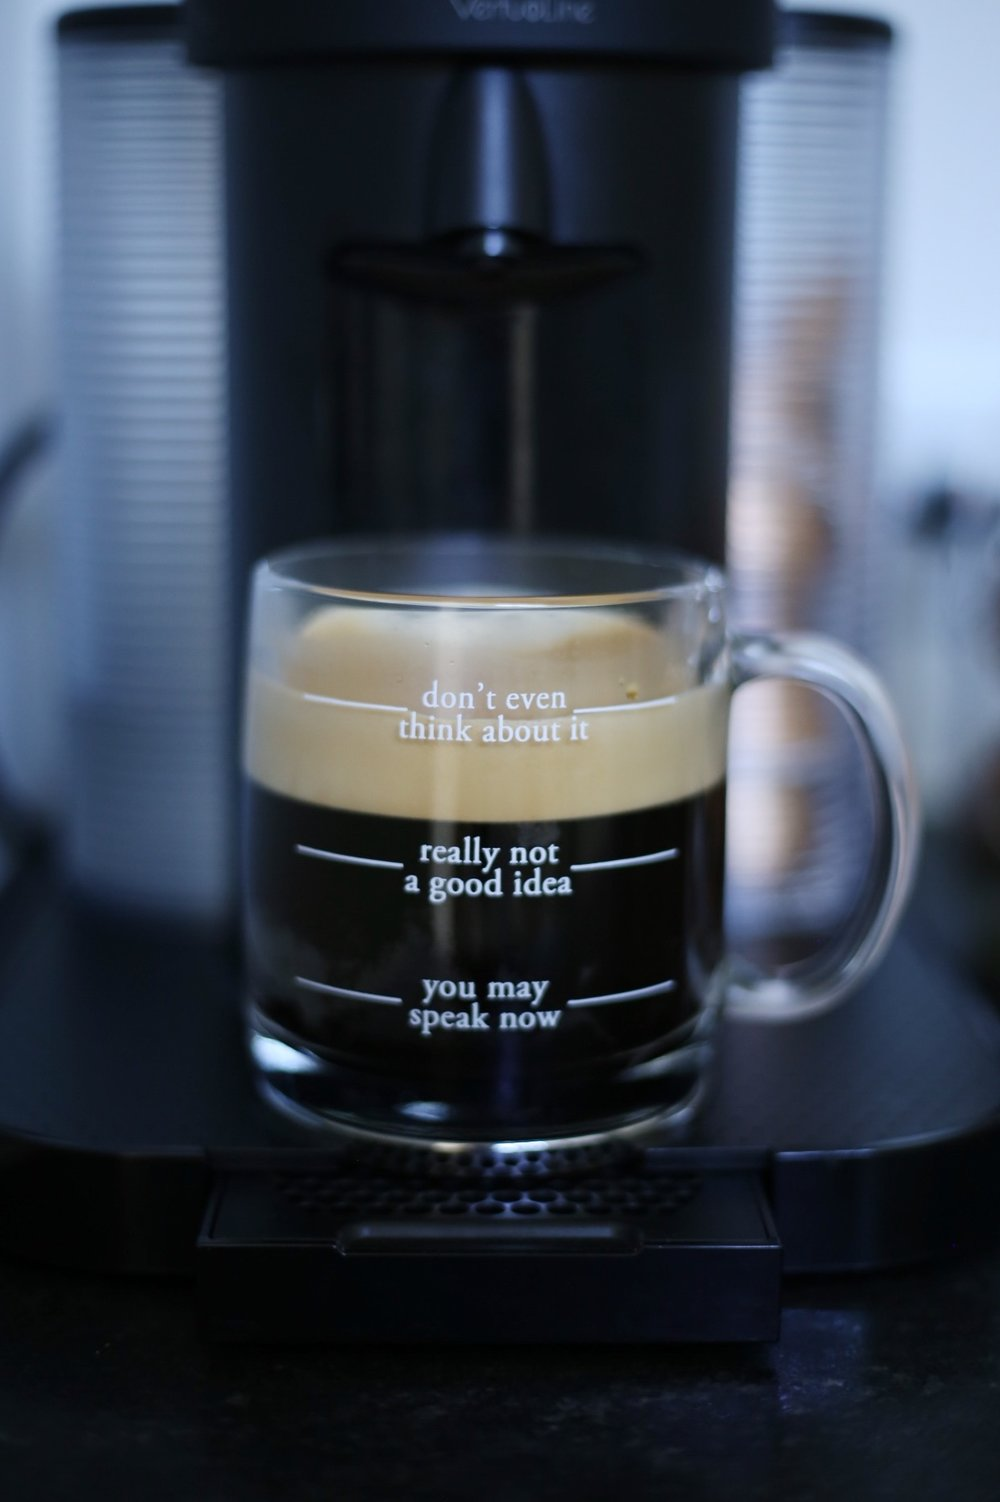 |  coffee mug  |  nespresso machine  | image by sydney clawson |